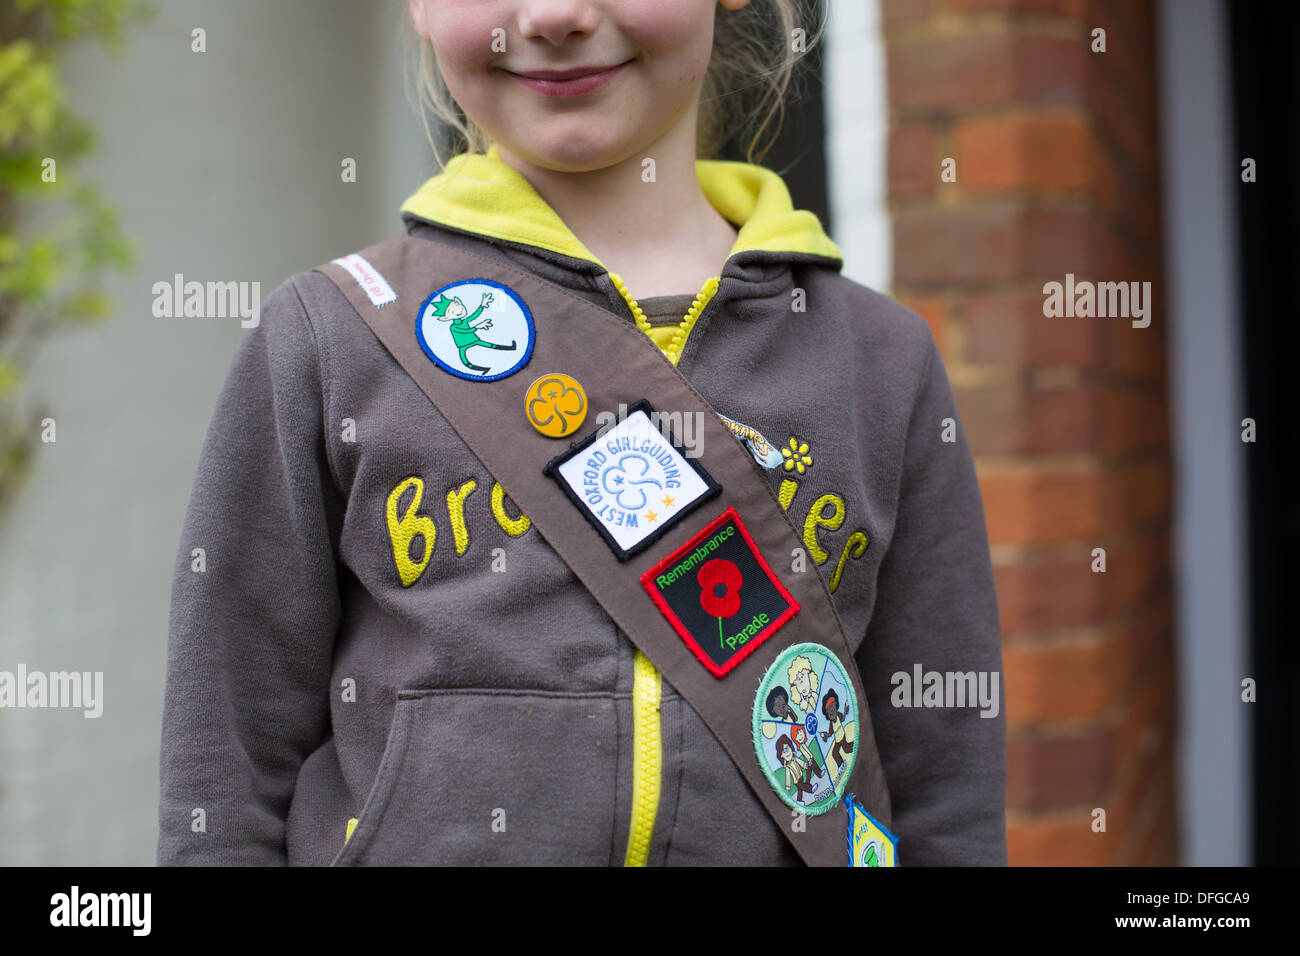 Young Girl wearing Brownie Uniform - Stock Image